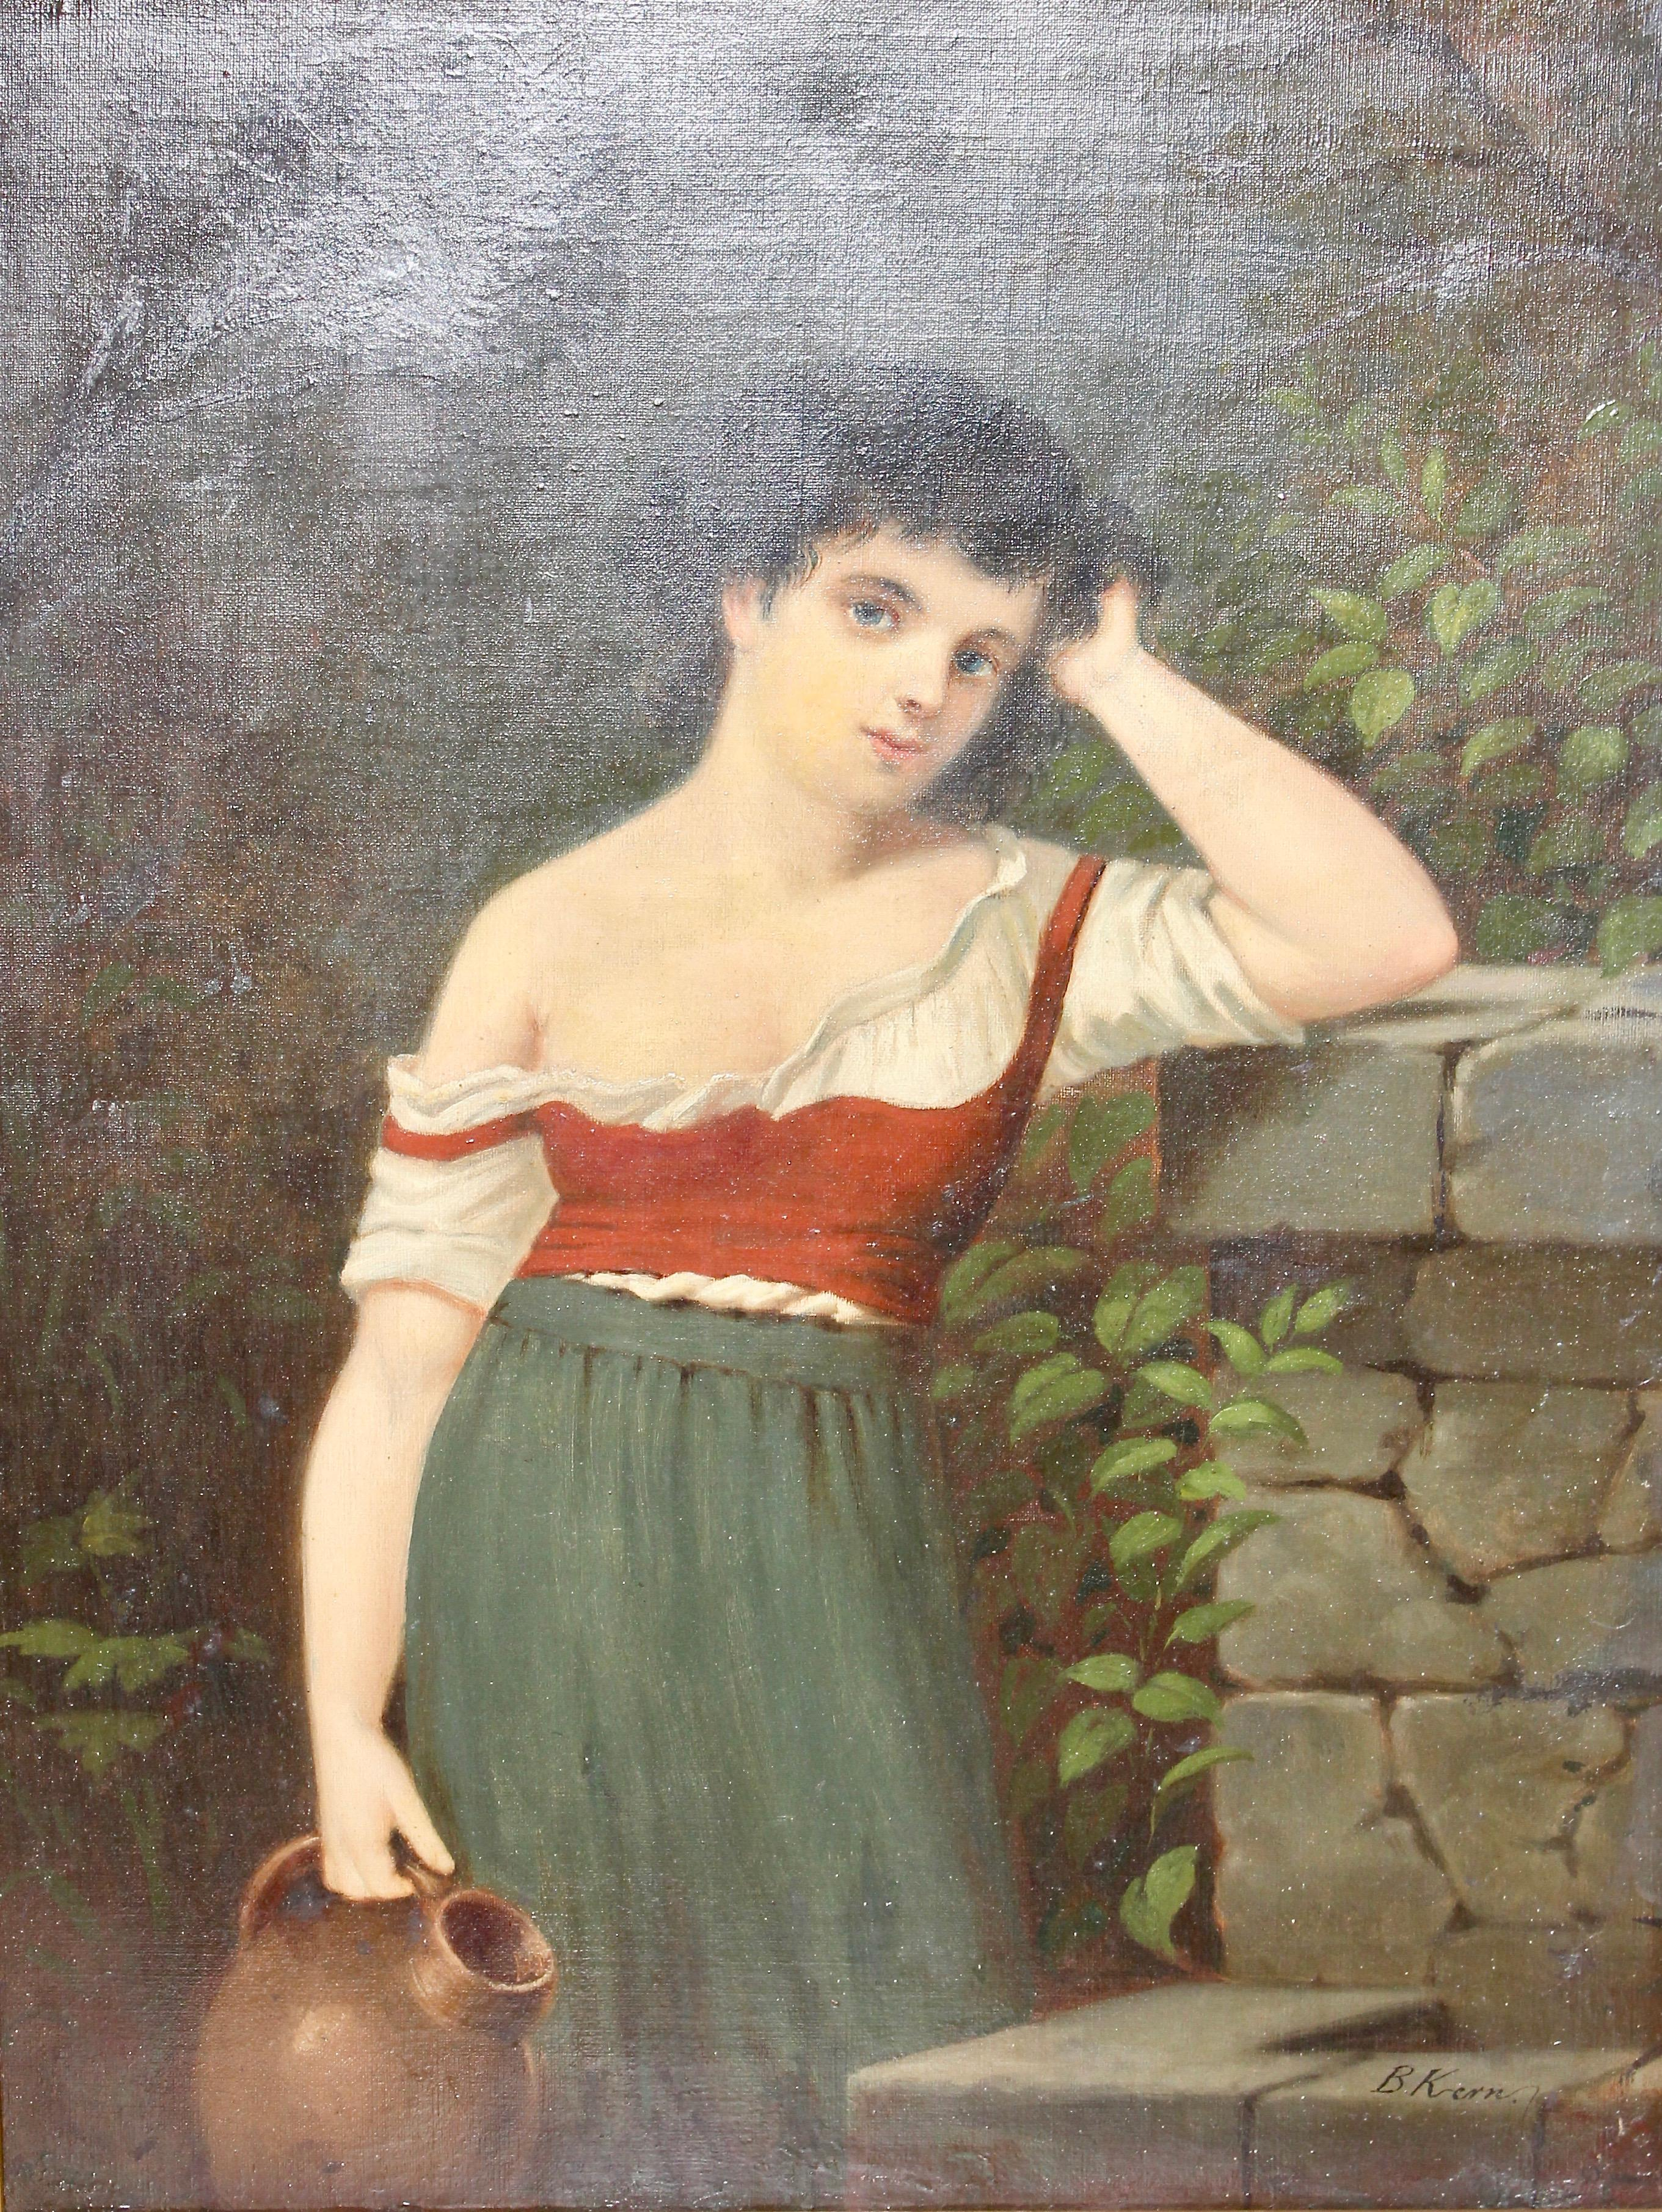 """Painting, 19th century, oil on canvas, """"Young woman at the well"""""""